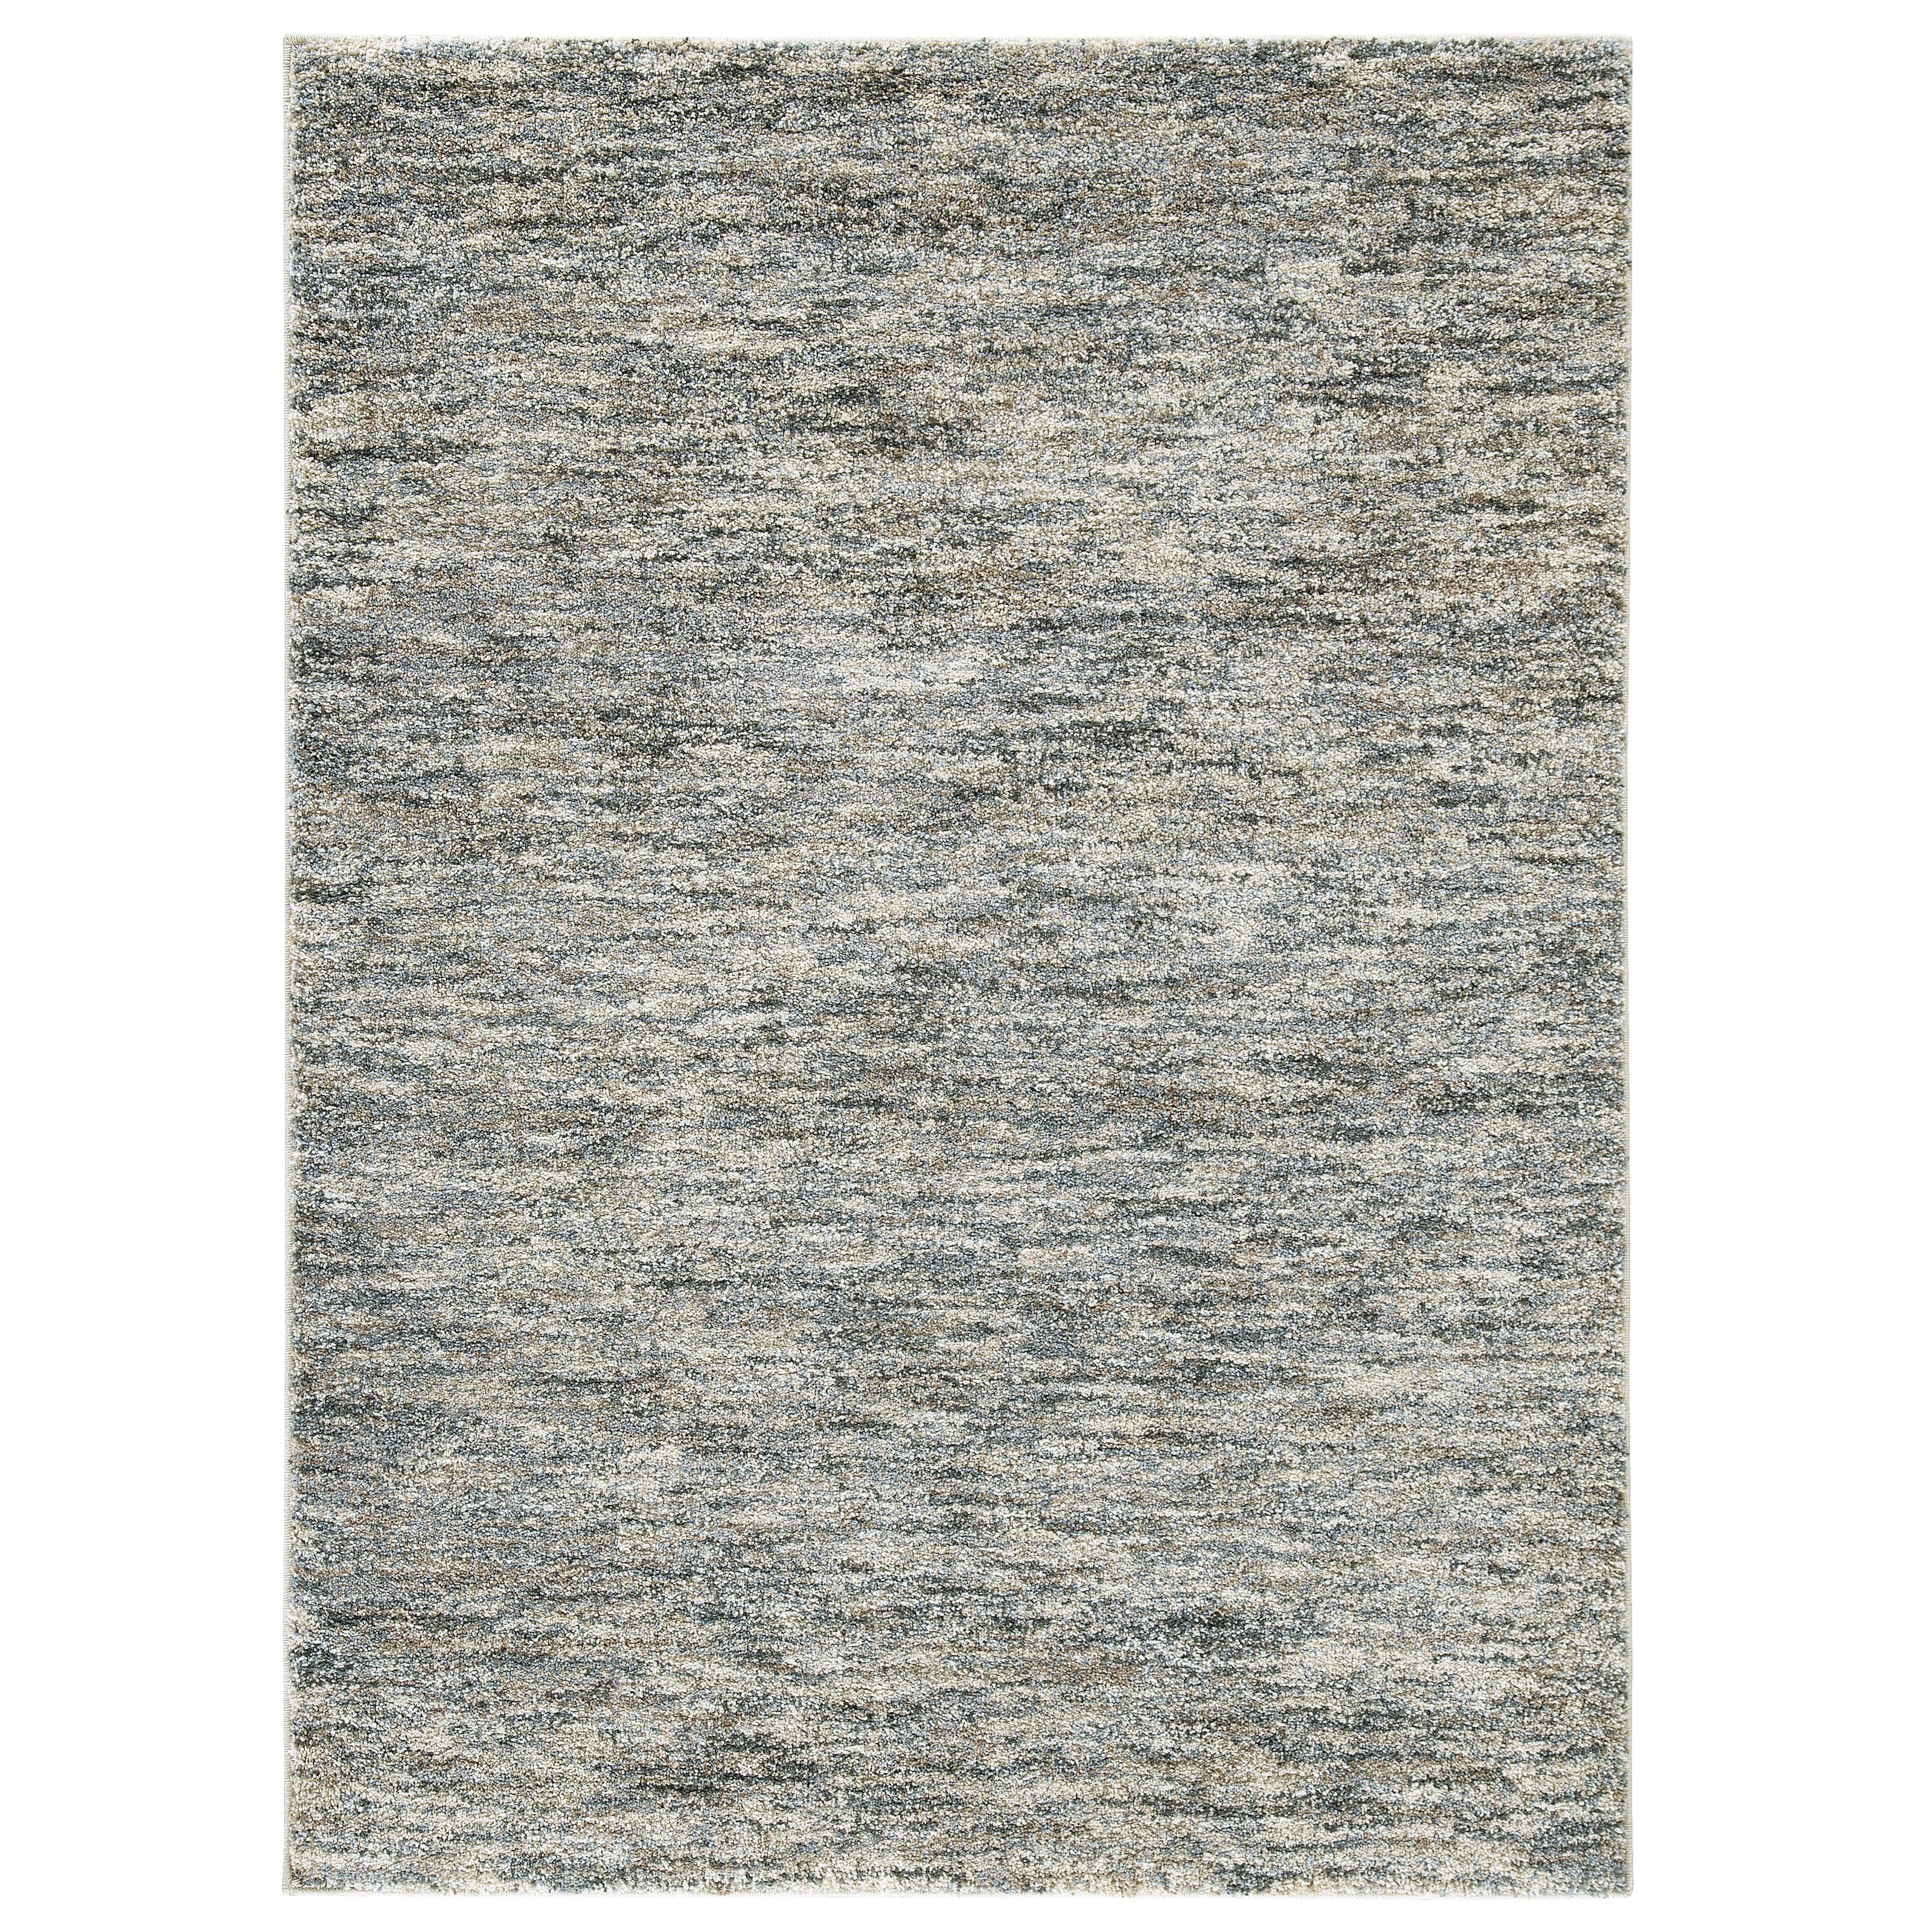 Contemporary Area Rugs 8x10 Rug by Signature Design by Ashley at HomeWorld Furniture